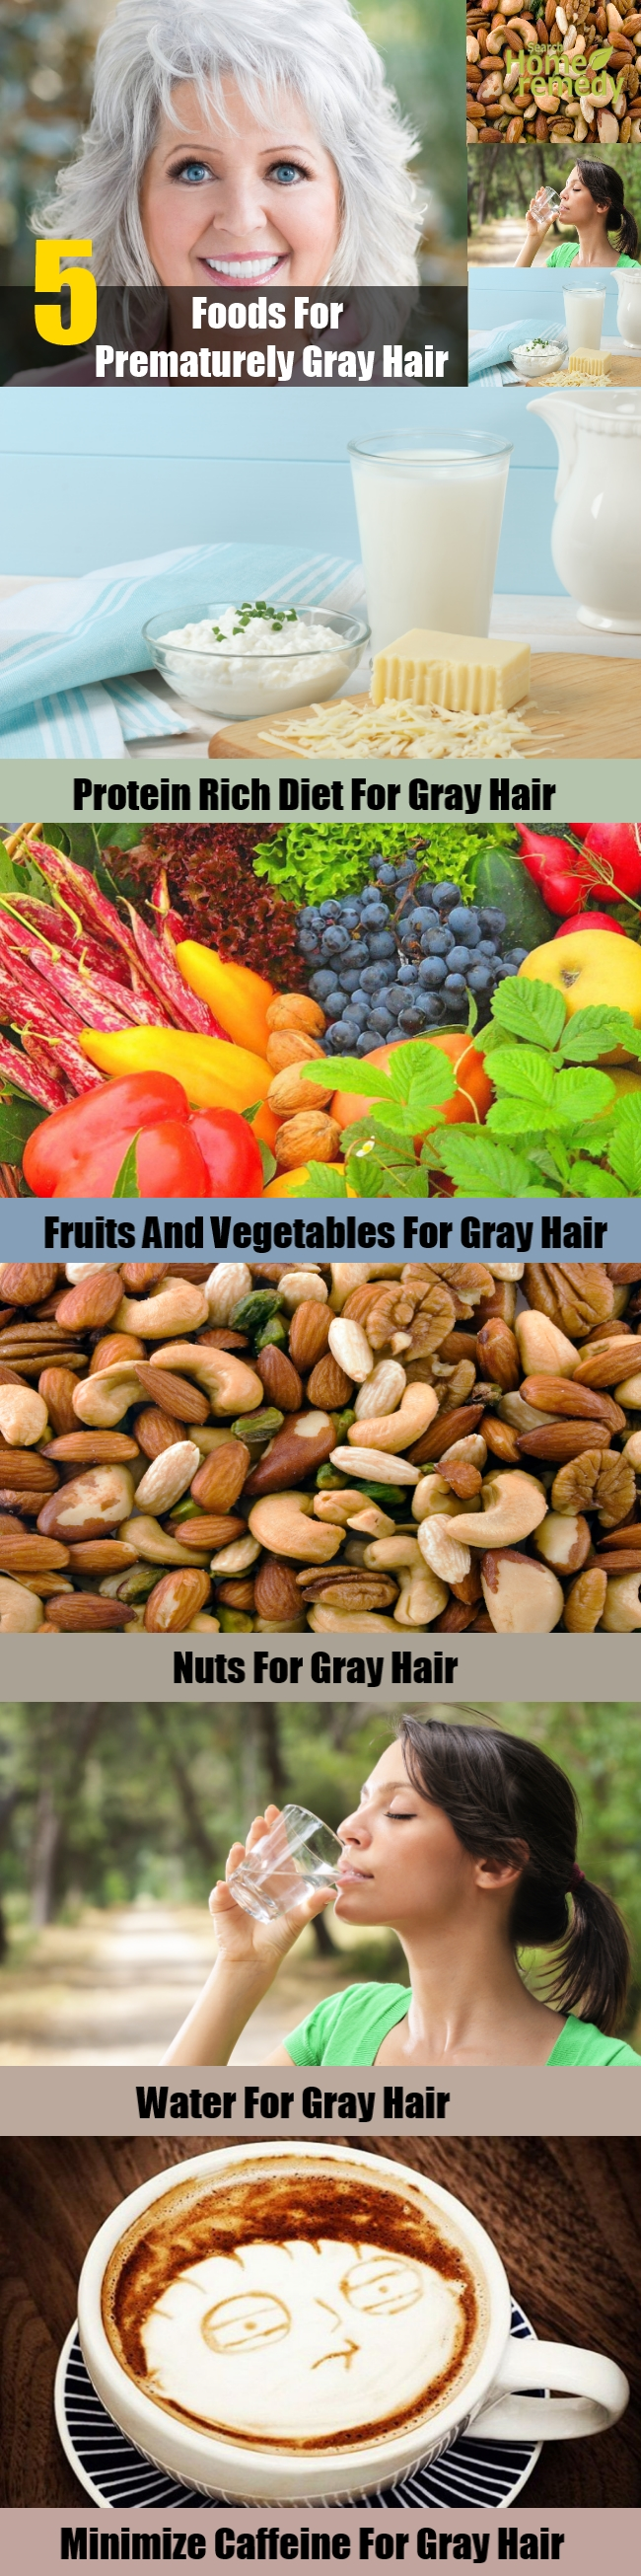 5 Foods For Prematurely Gray Hair